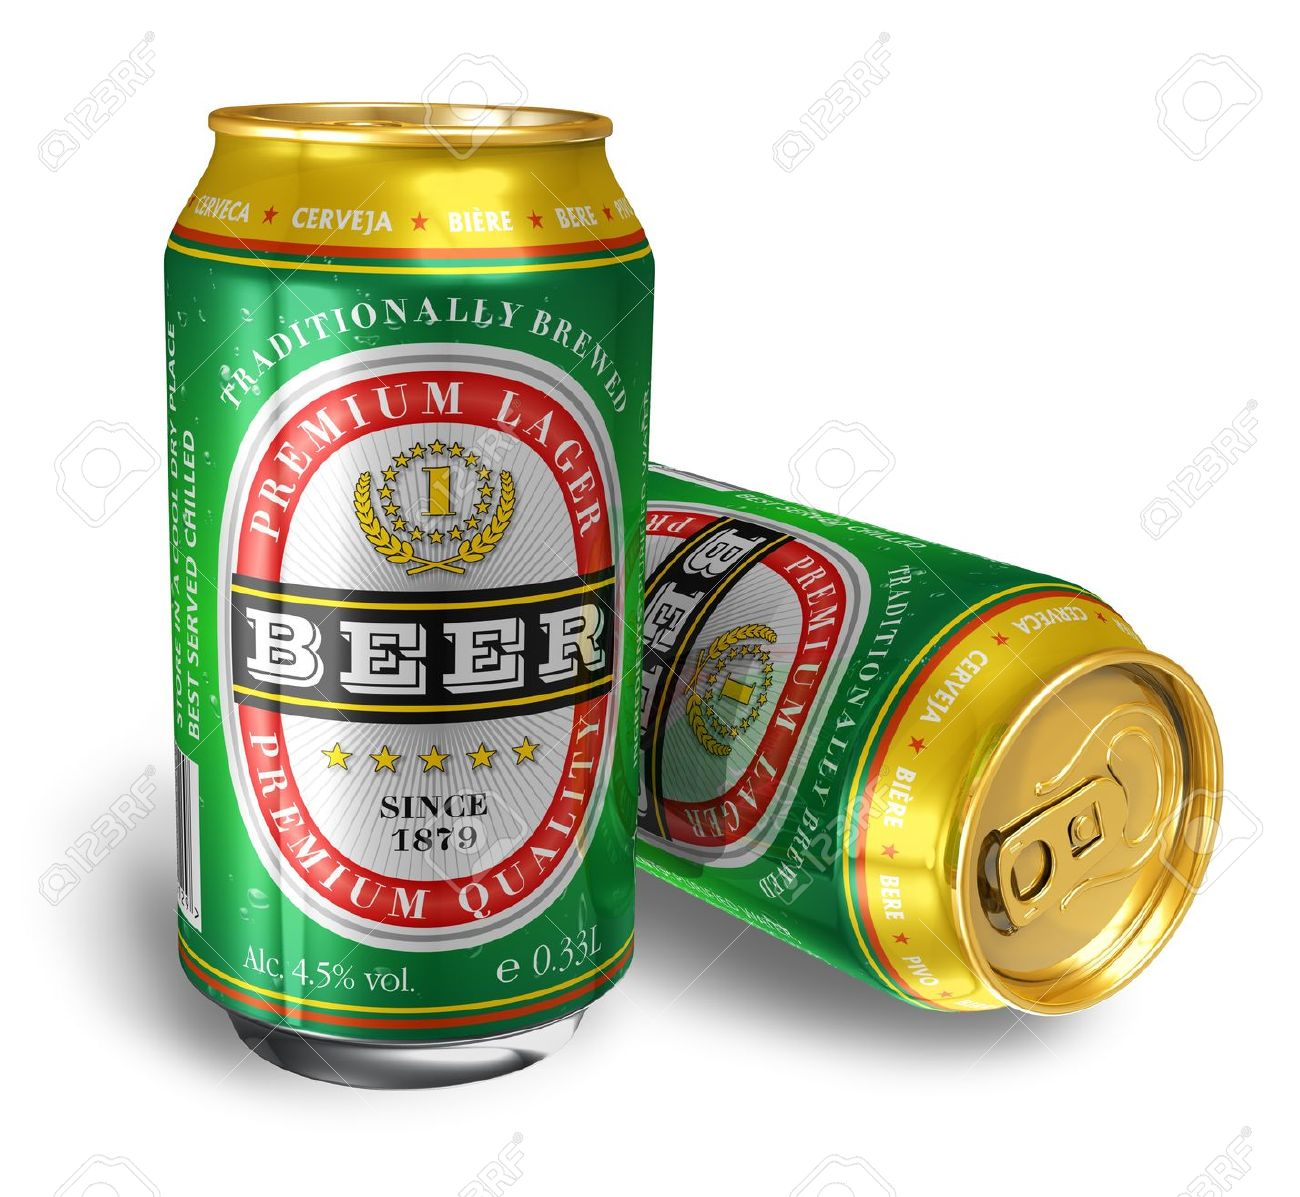 beer cans isolated on white background design of these cans